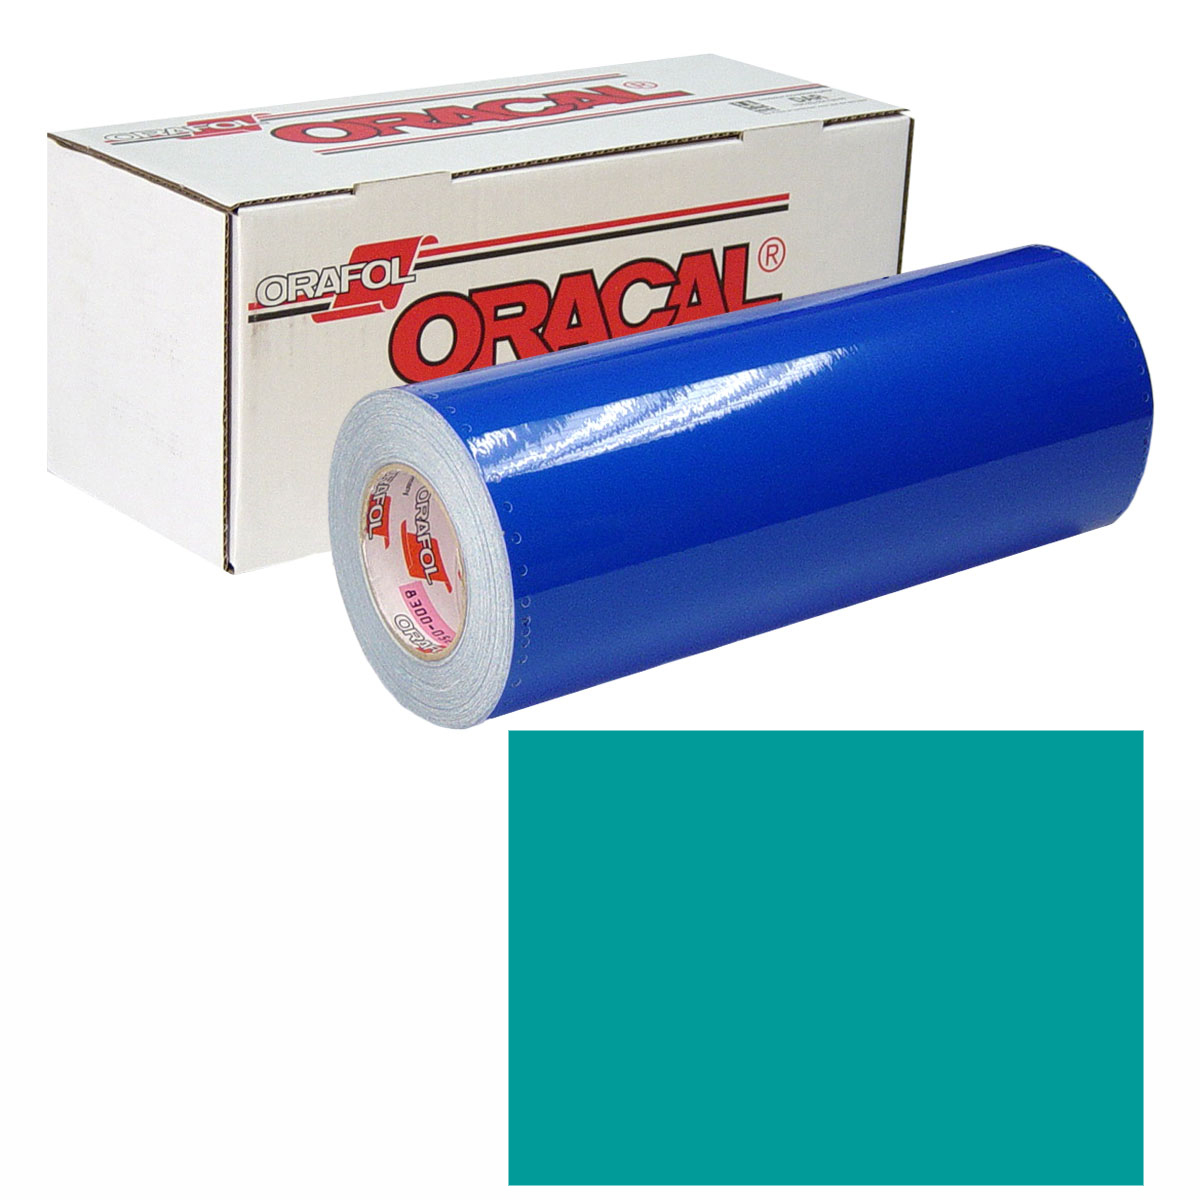 ORACAL 631 Unp 24in X 10yd 054 Turquoise